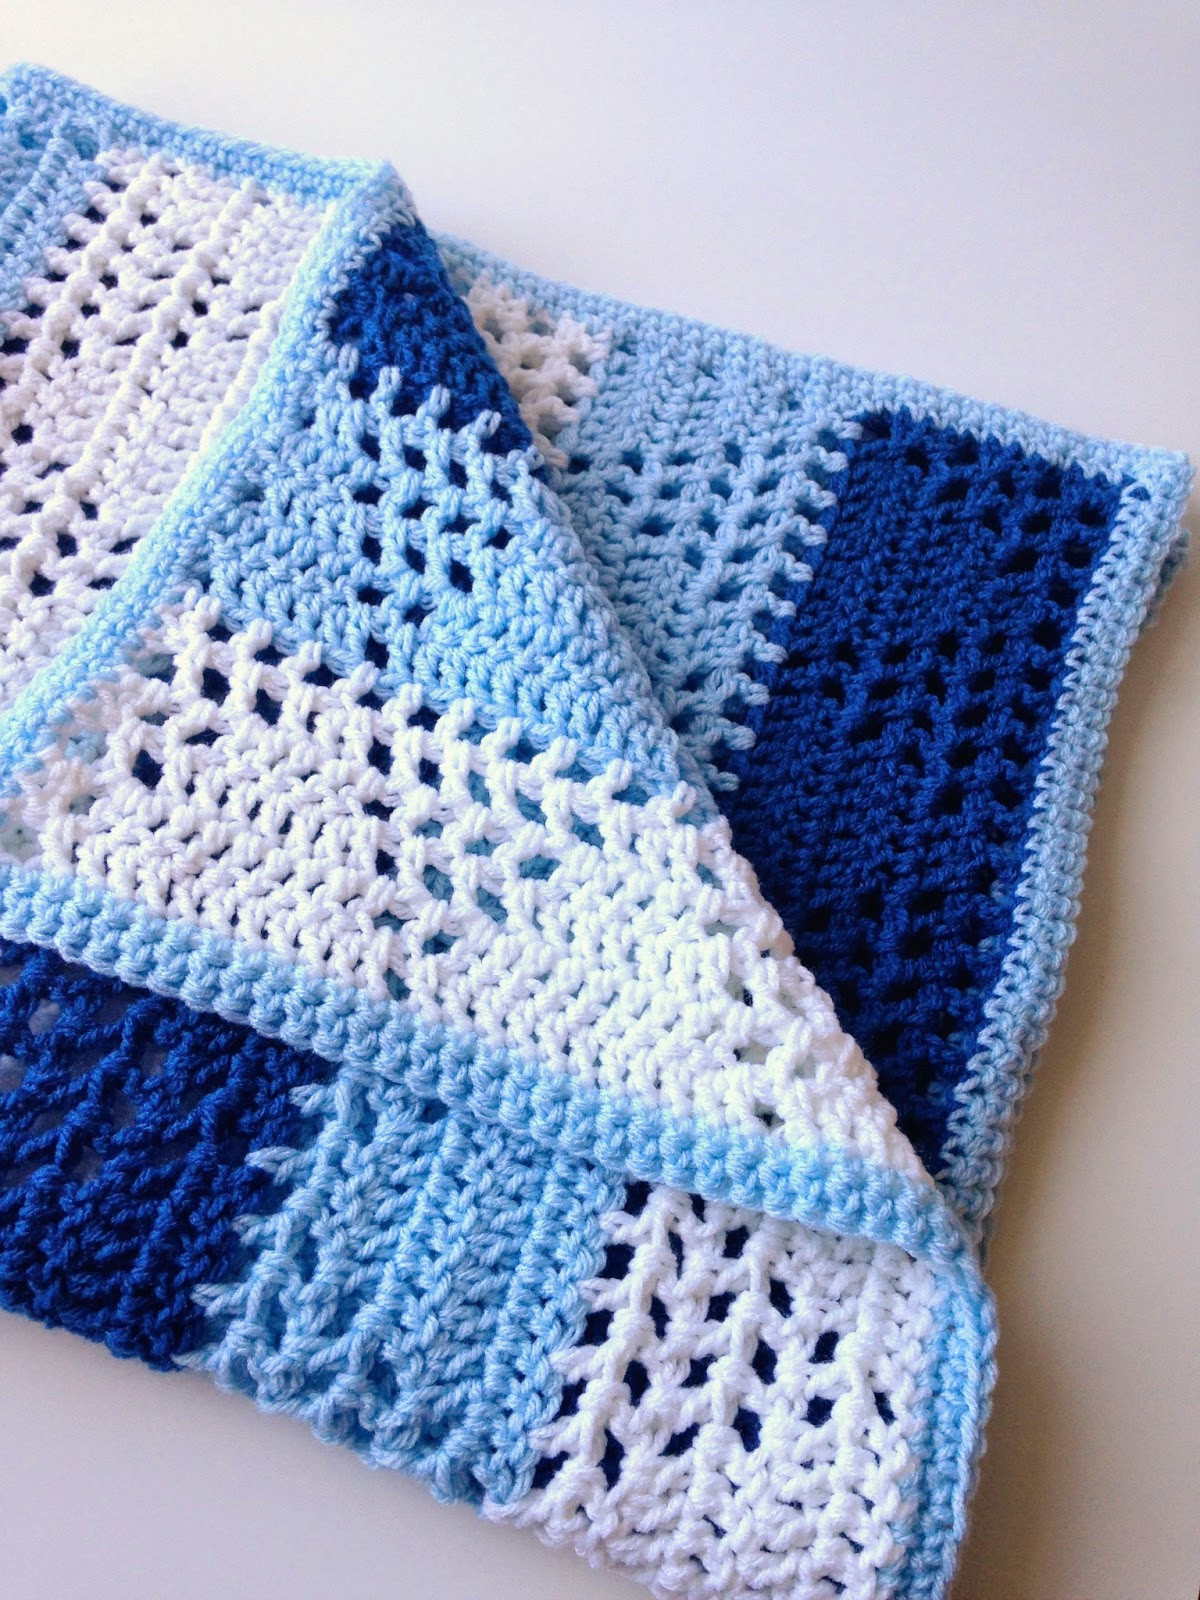 Baby Boy Crochet Blanket Patterns Awesome 5 Little Monsters Triangles & Stripes Baby Blanket Of Baby Boy Crochet Blanket Patterns New Beautiful Baby Boy Blanket Crochet Pattern for Pram